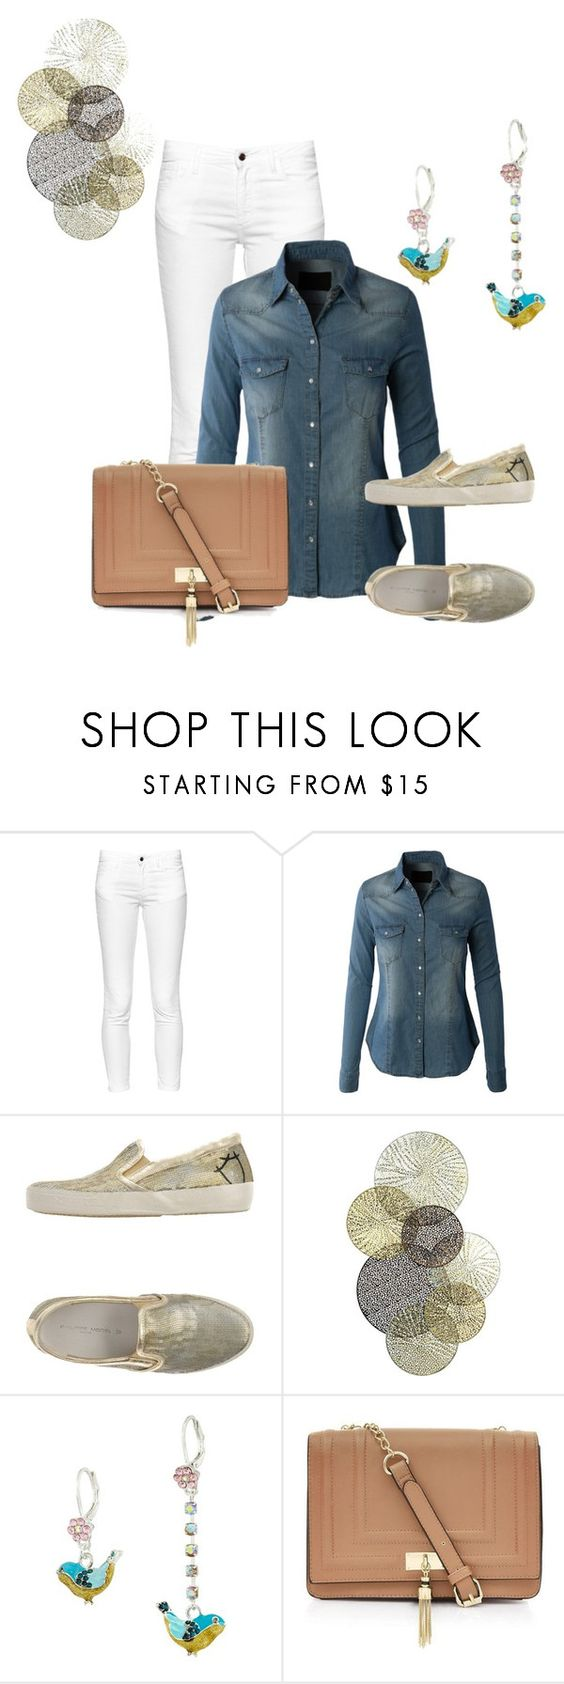 """""""Untitled #1940"""" by janicemckay ❤ liked on Polyvore featuring French Connection, LE3NO, Philippe Model, Universal Lighting and Decor and Betsey Johnson"""